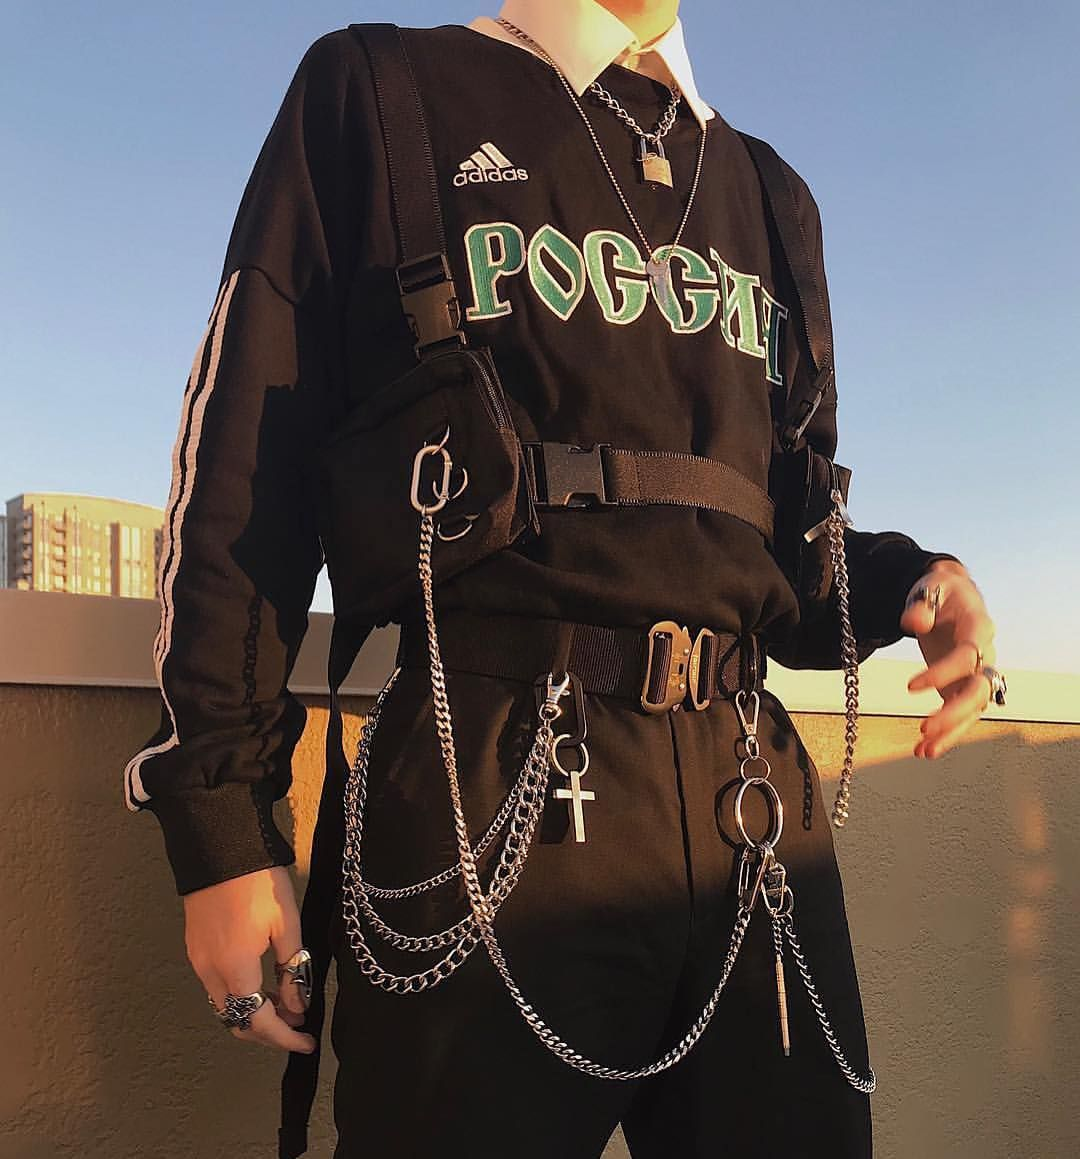 Image result for chains streetwear